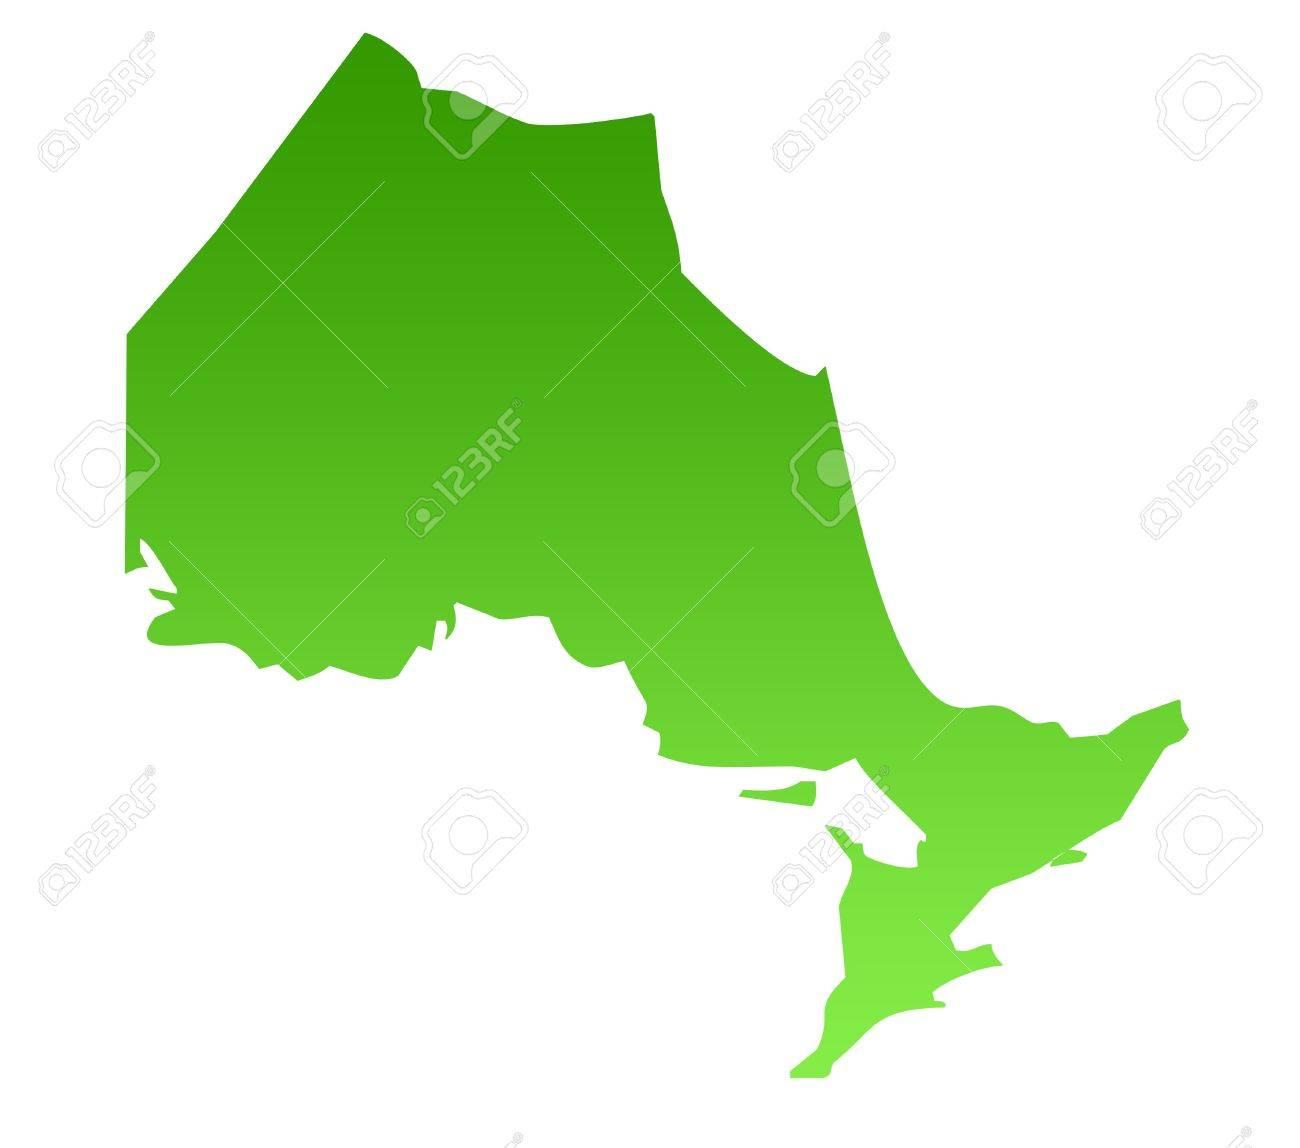 Map Of Canadian Province Of Ontario In Green  Isolated On White     Map of Canadian province of Ontario in green  isolated on white background   Stock Photo